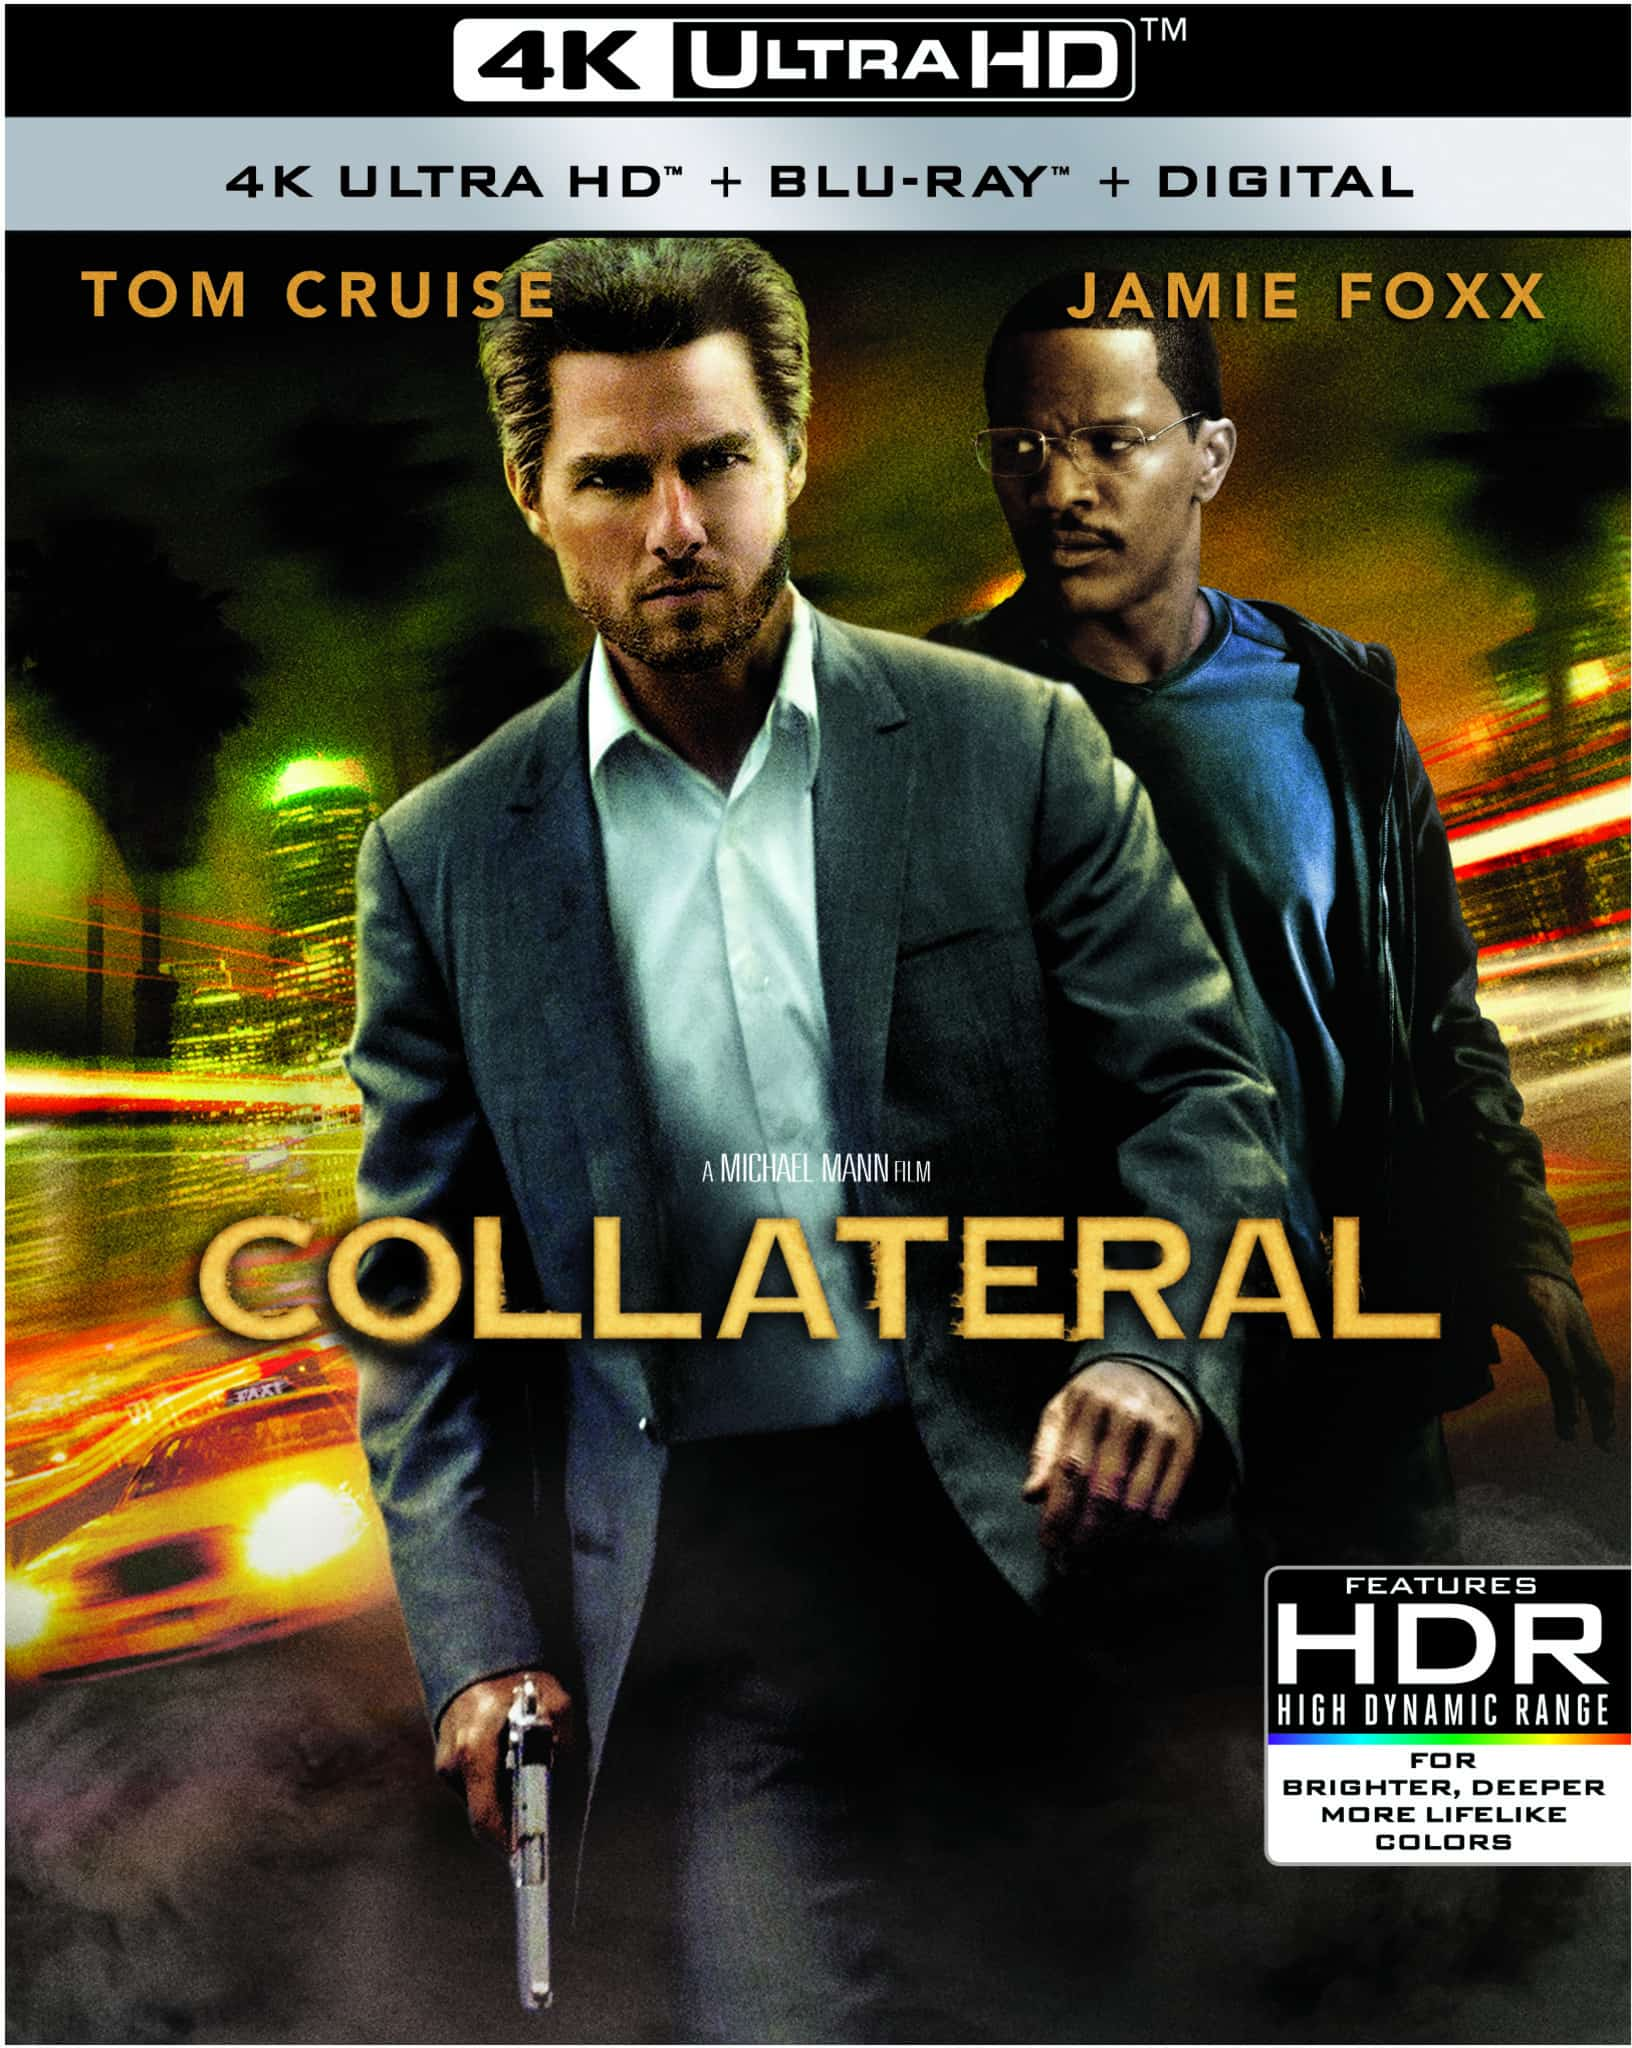 COLLATERAL arrives on 4K Ultra HD December 8th 2